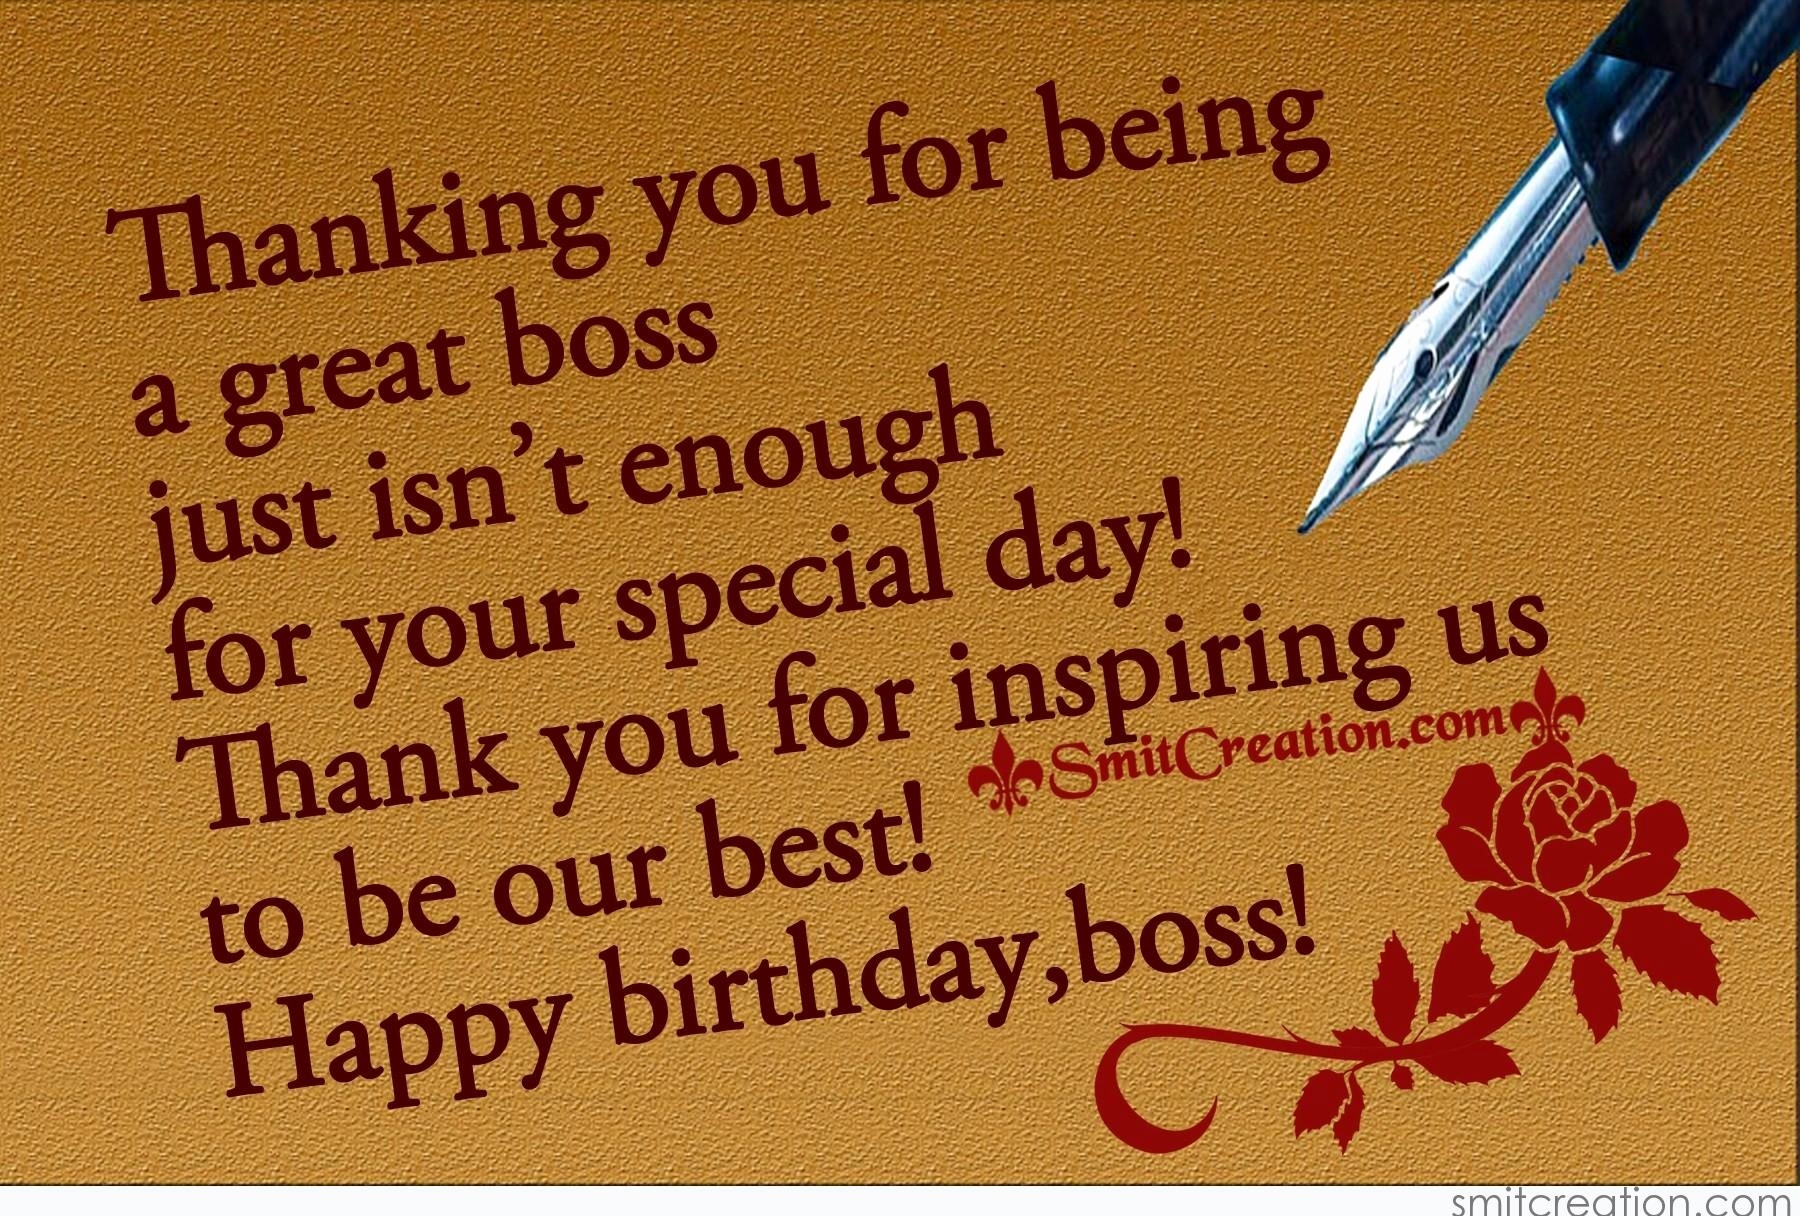 birthday message for boss inspiration ; happy-birthday-wishes-boss-sms-new-birthday-sms-in-english-for-boss-of-happy-birthday-wishes-boss-sms